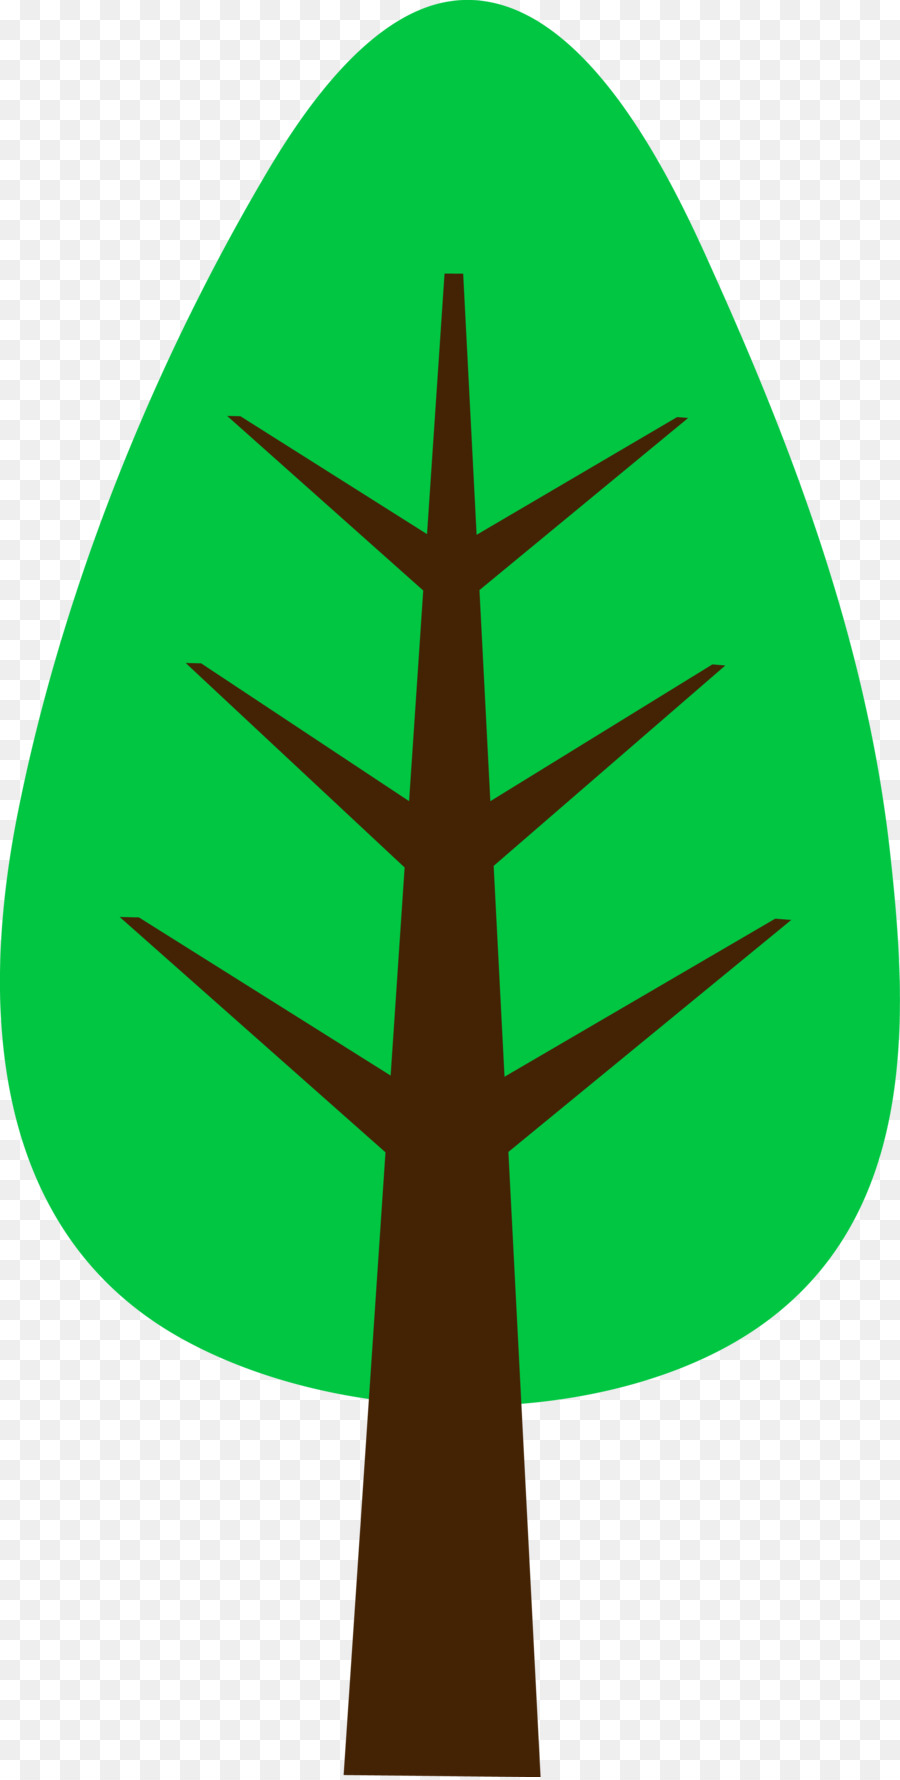 Pine tree cute. Png free transparent images